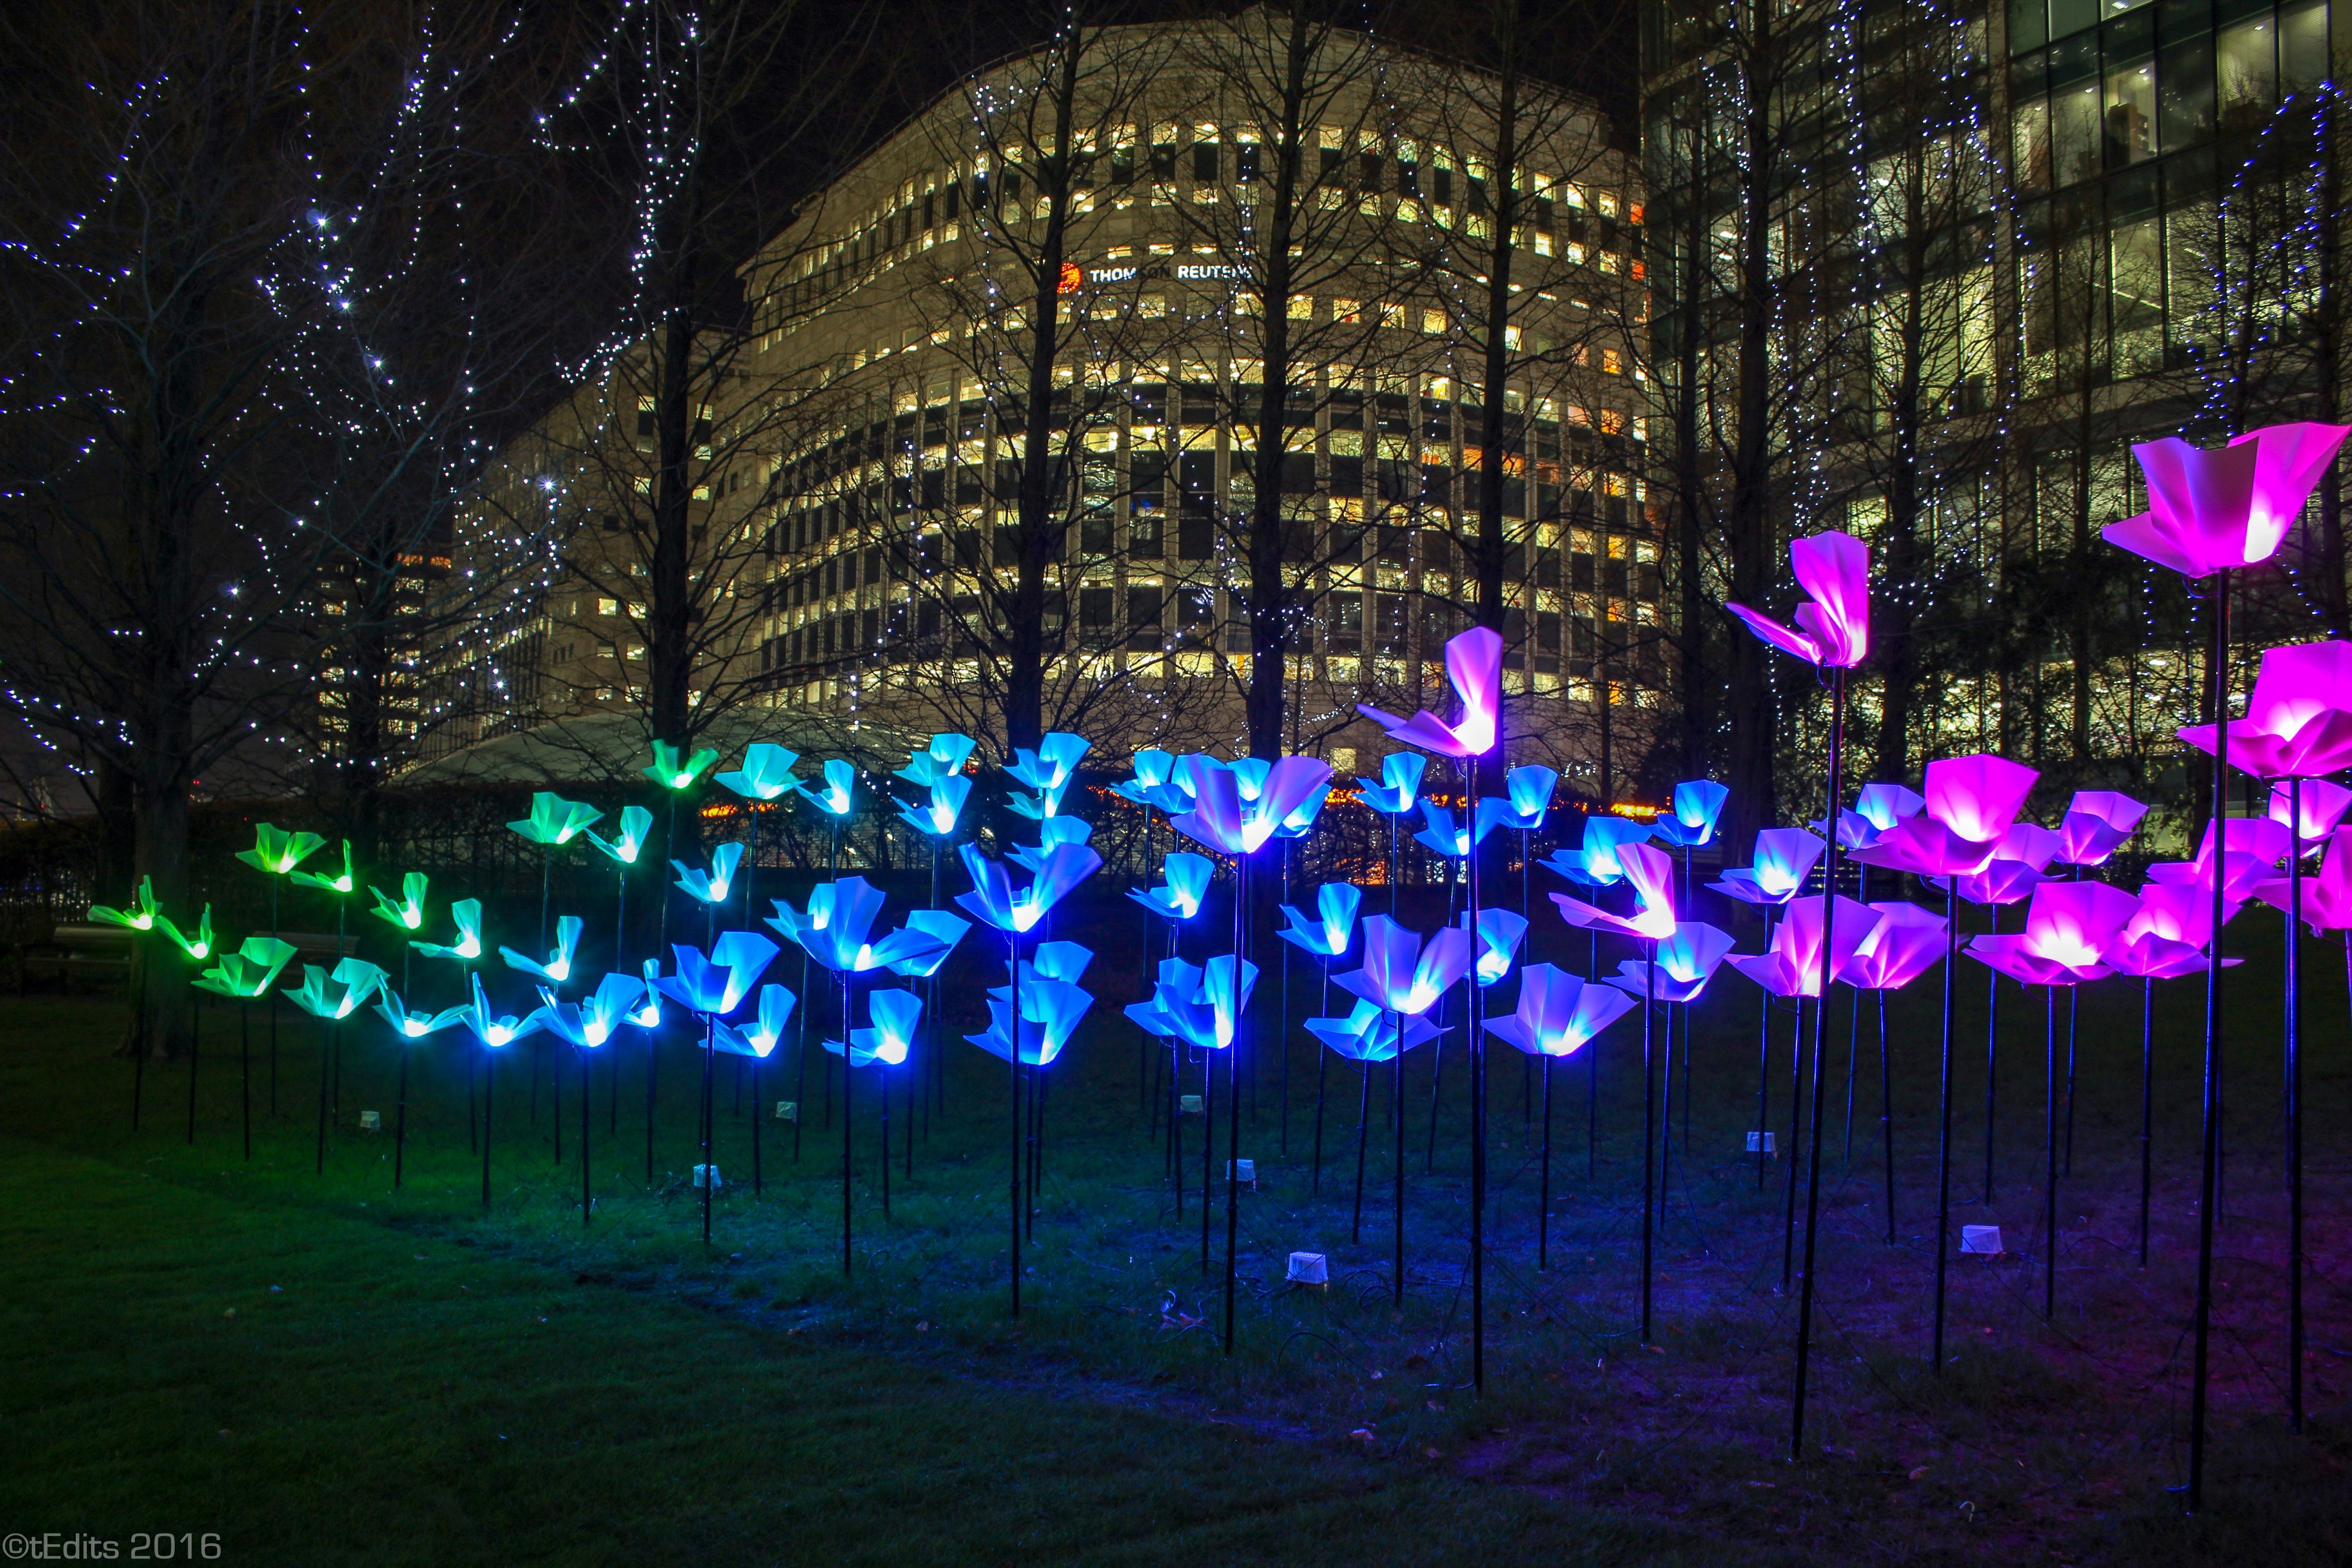 Canary Wharf Winter Lights 2016 - On The Wings of Freedom, Aether & Hemera